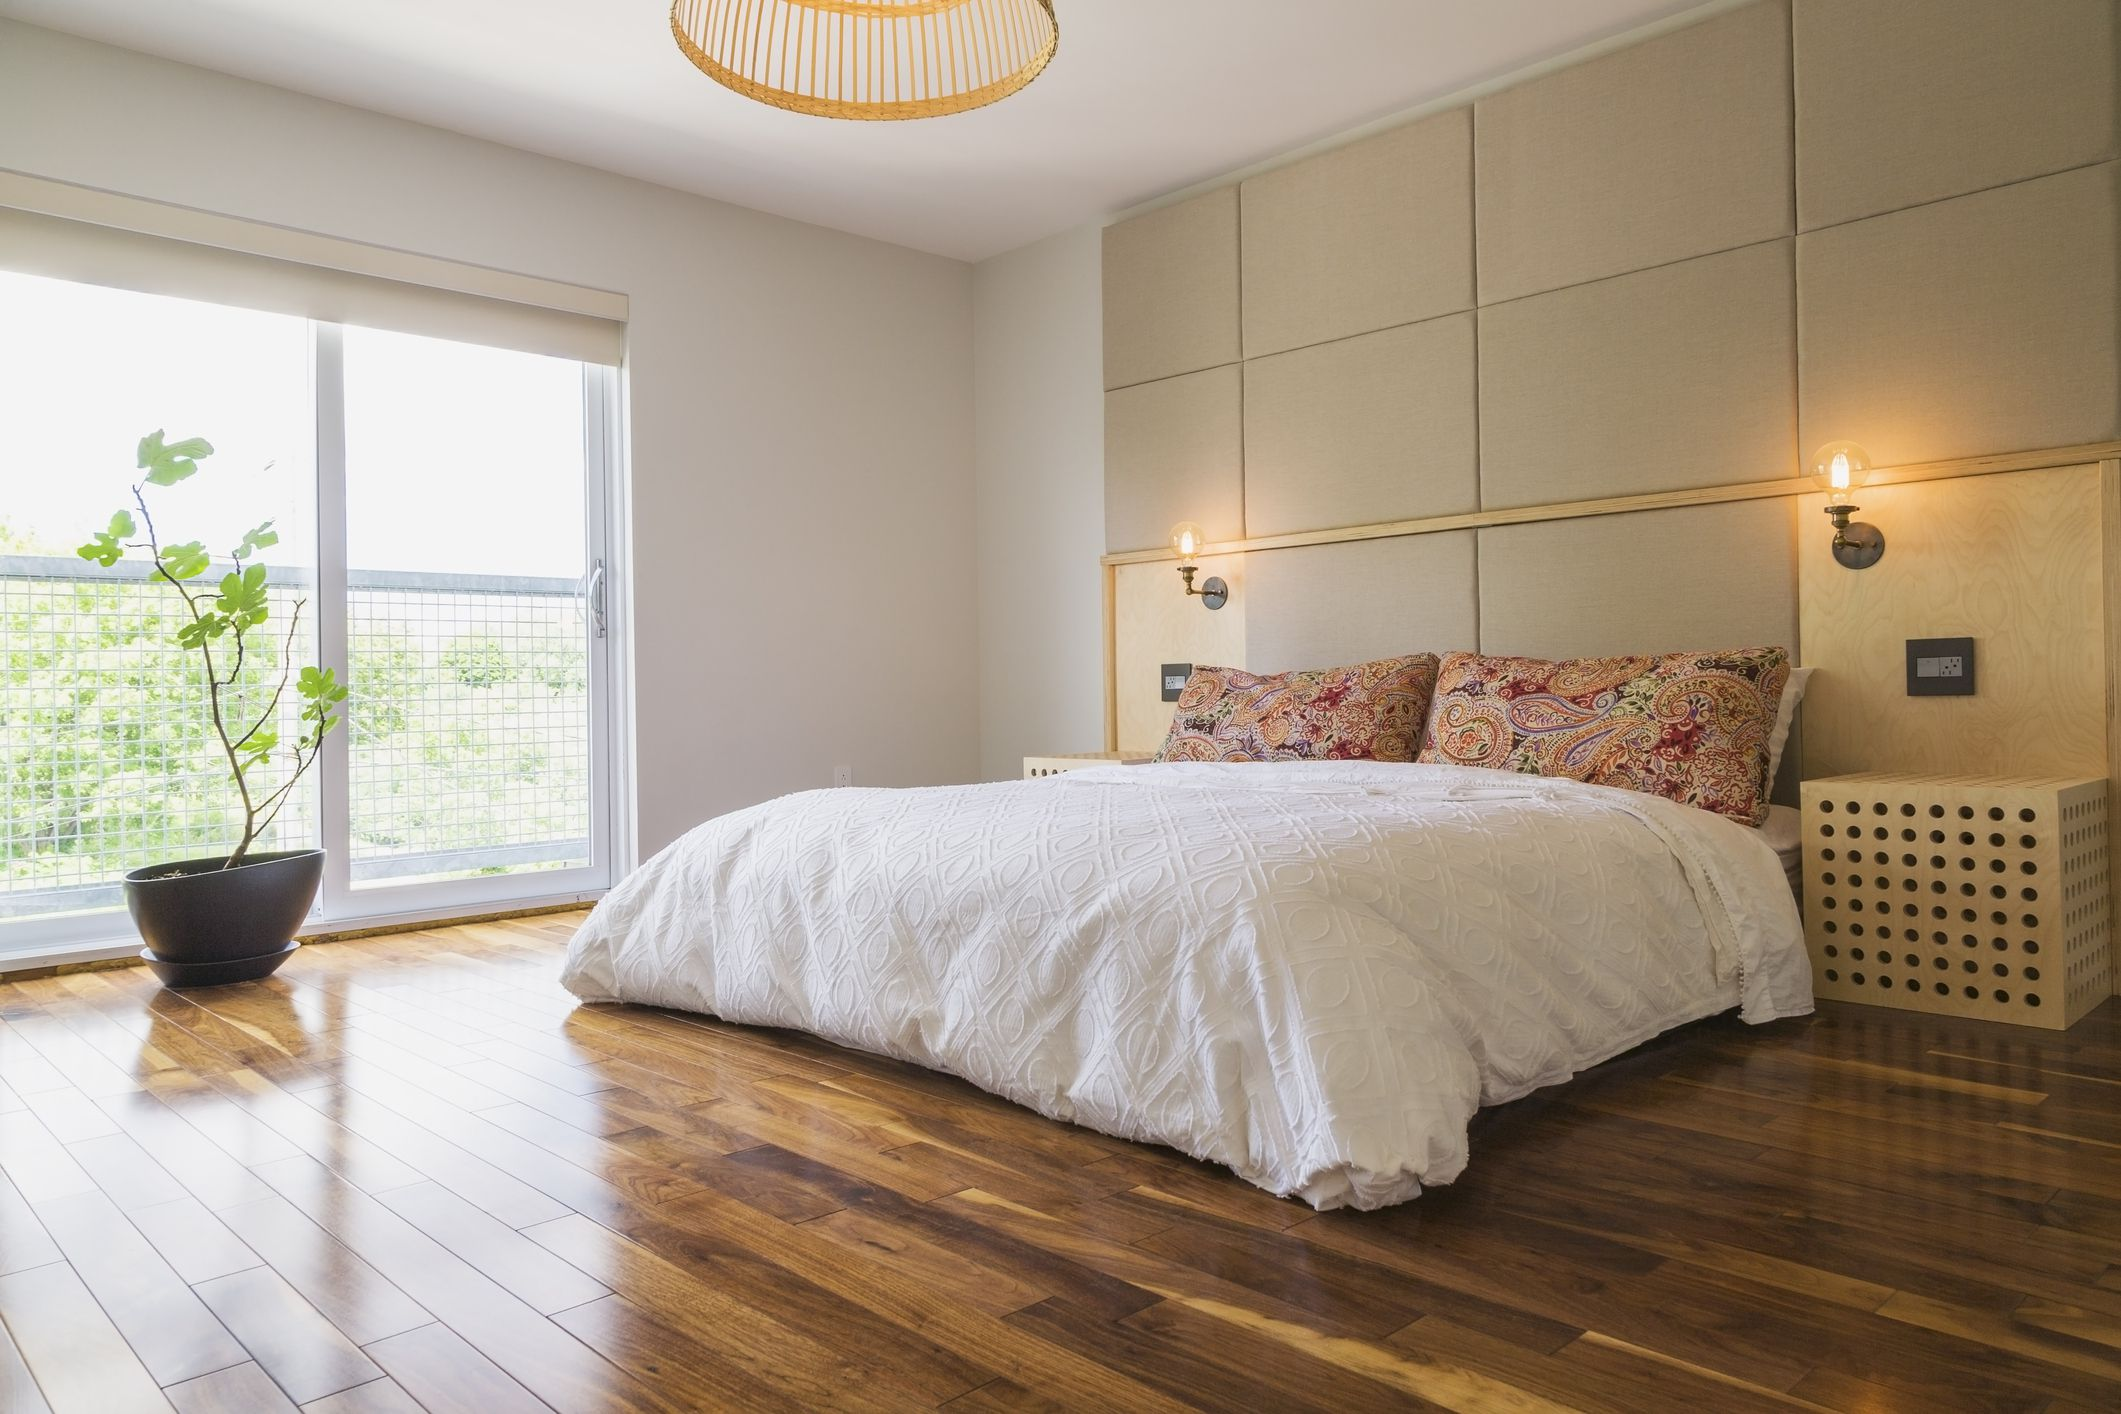 how to feng shui your bedroom 18481 | gettyimages 702551757 5ae247c68e1b6e0037c97e4e